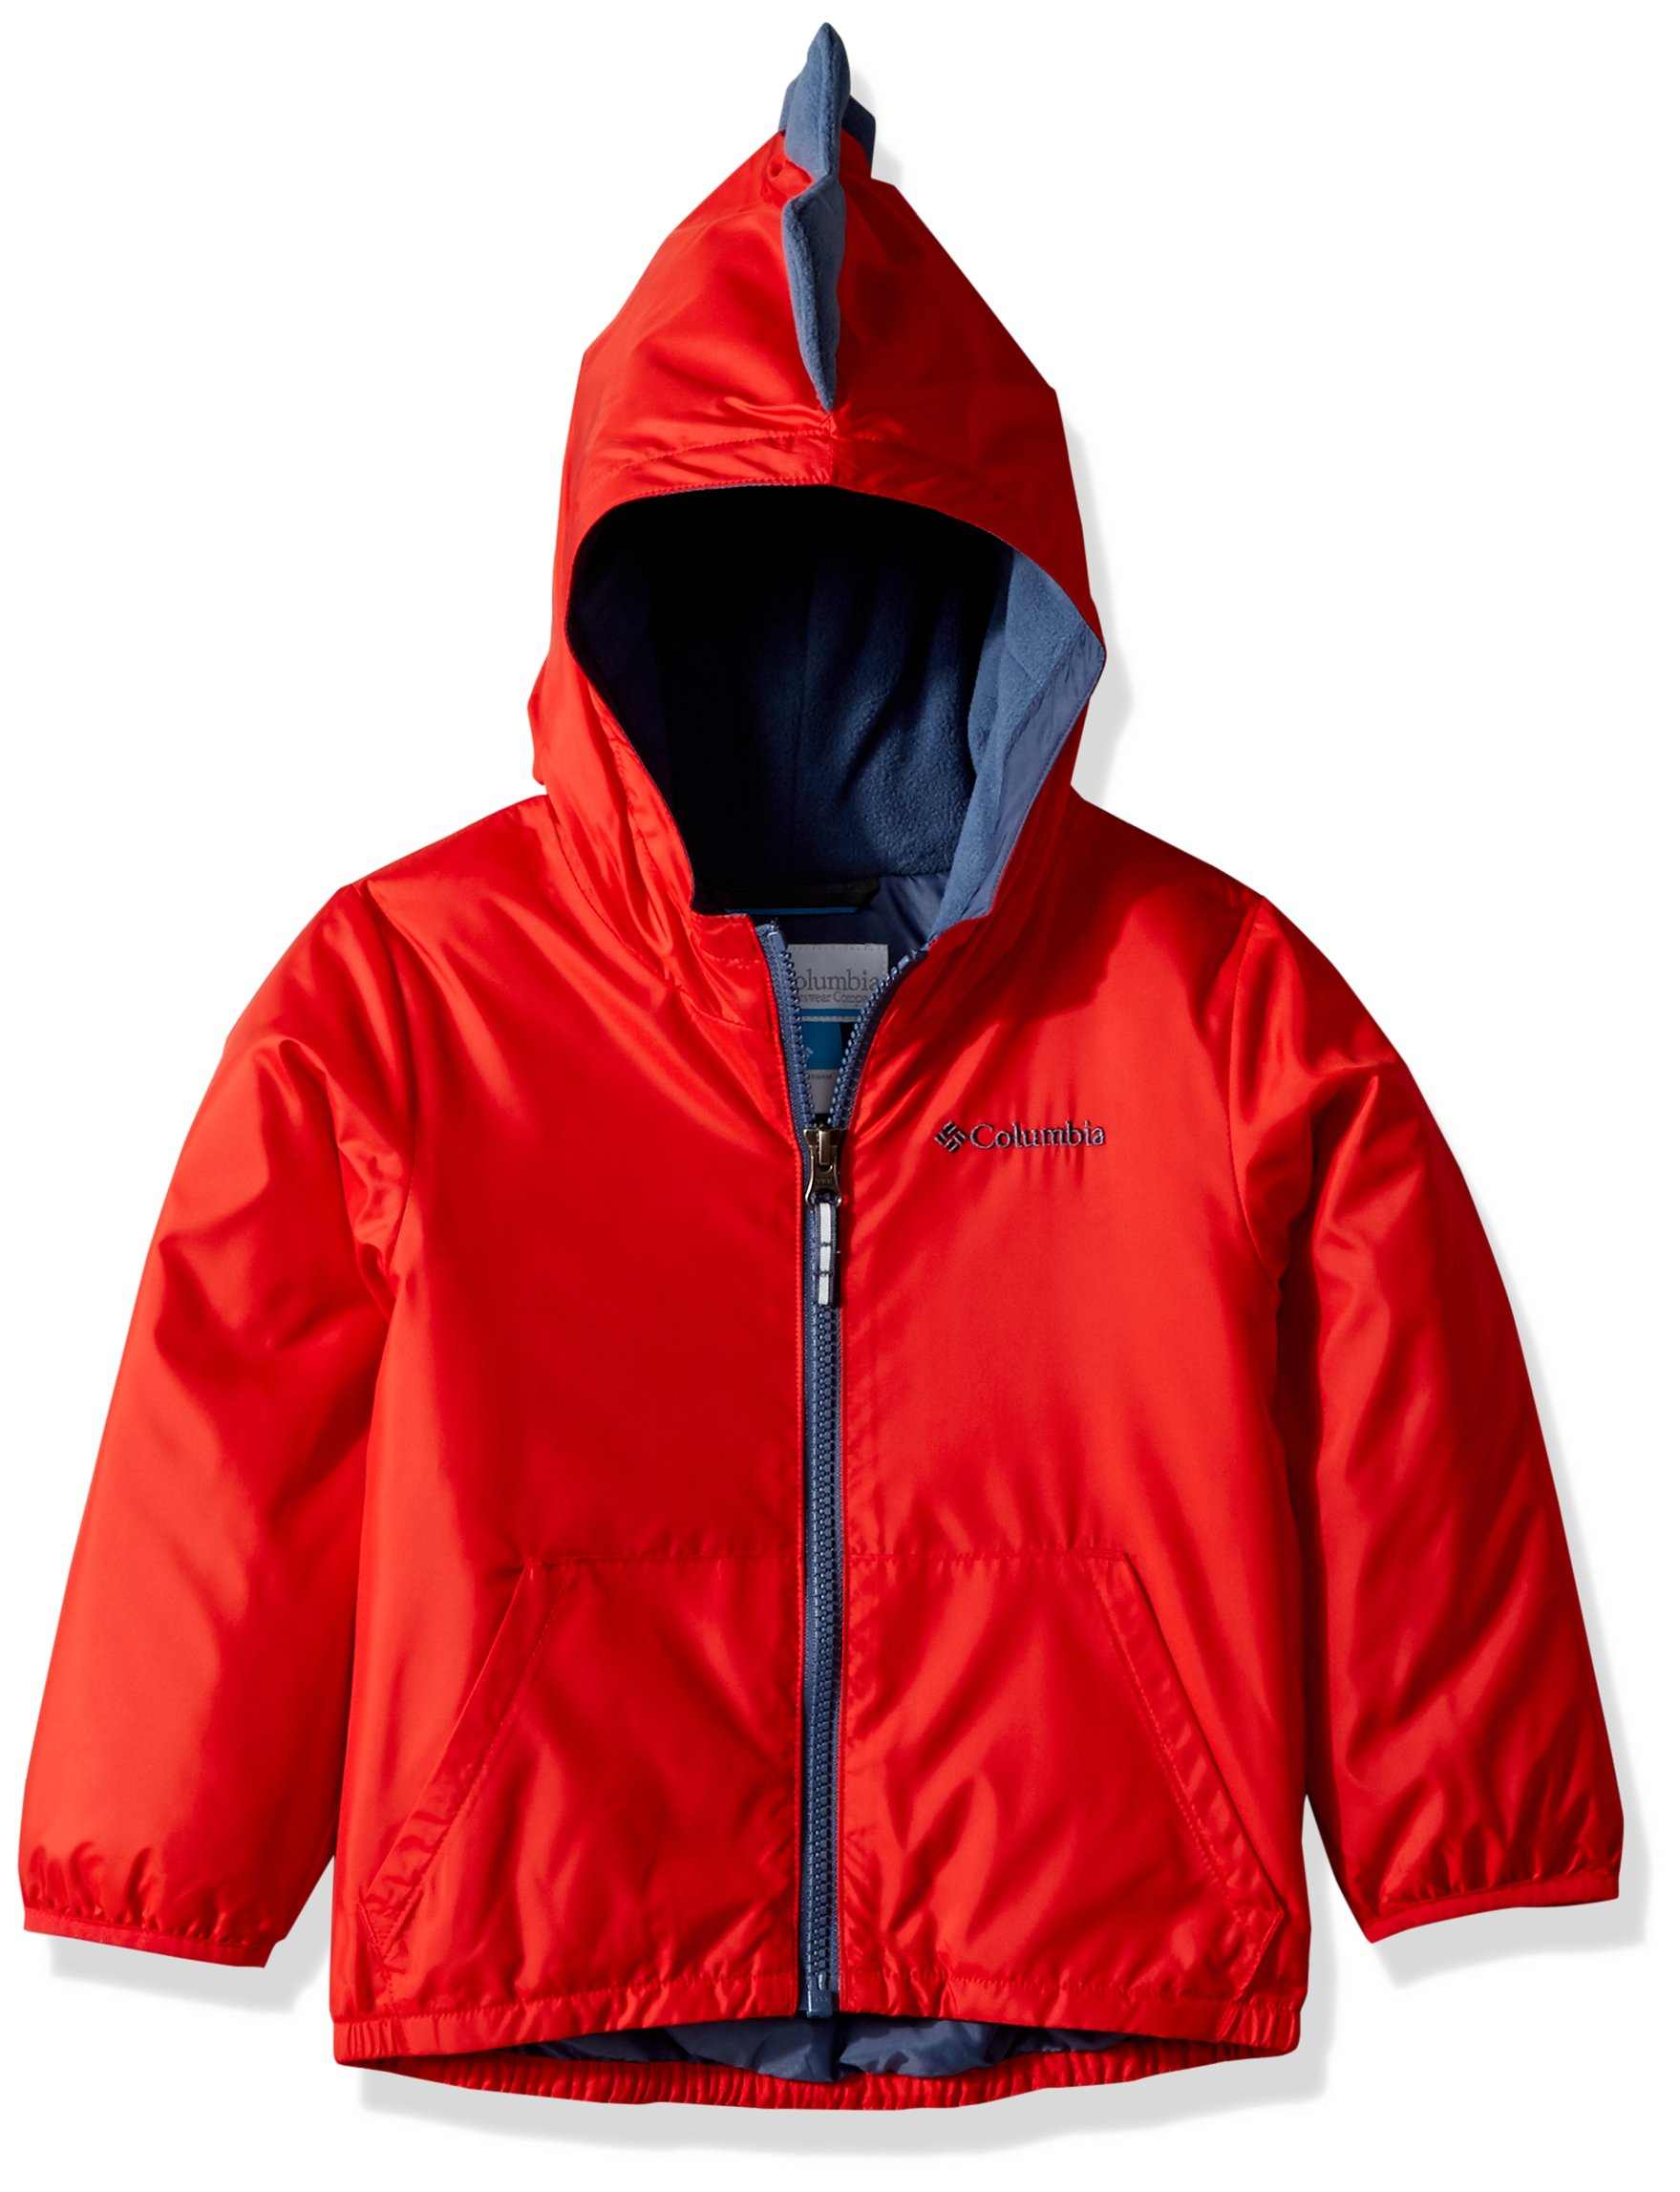 Columbia Kids & Baby Toddler Kids Kitterwibbit Jacket, Red Spark, 2T by Columbia